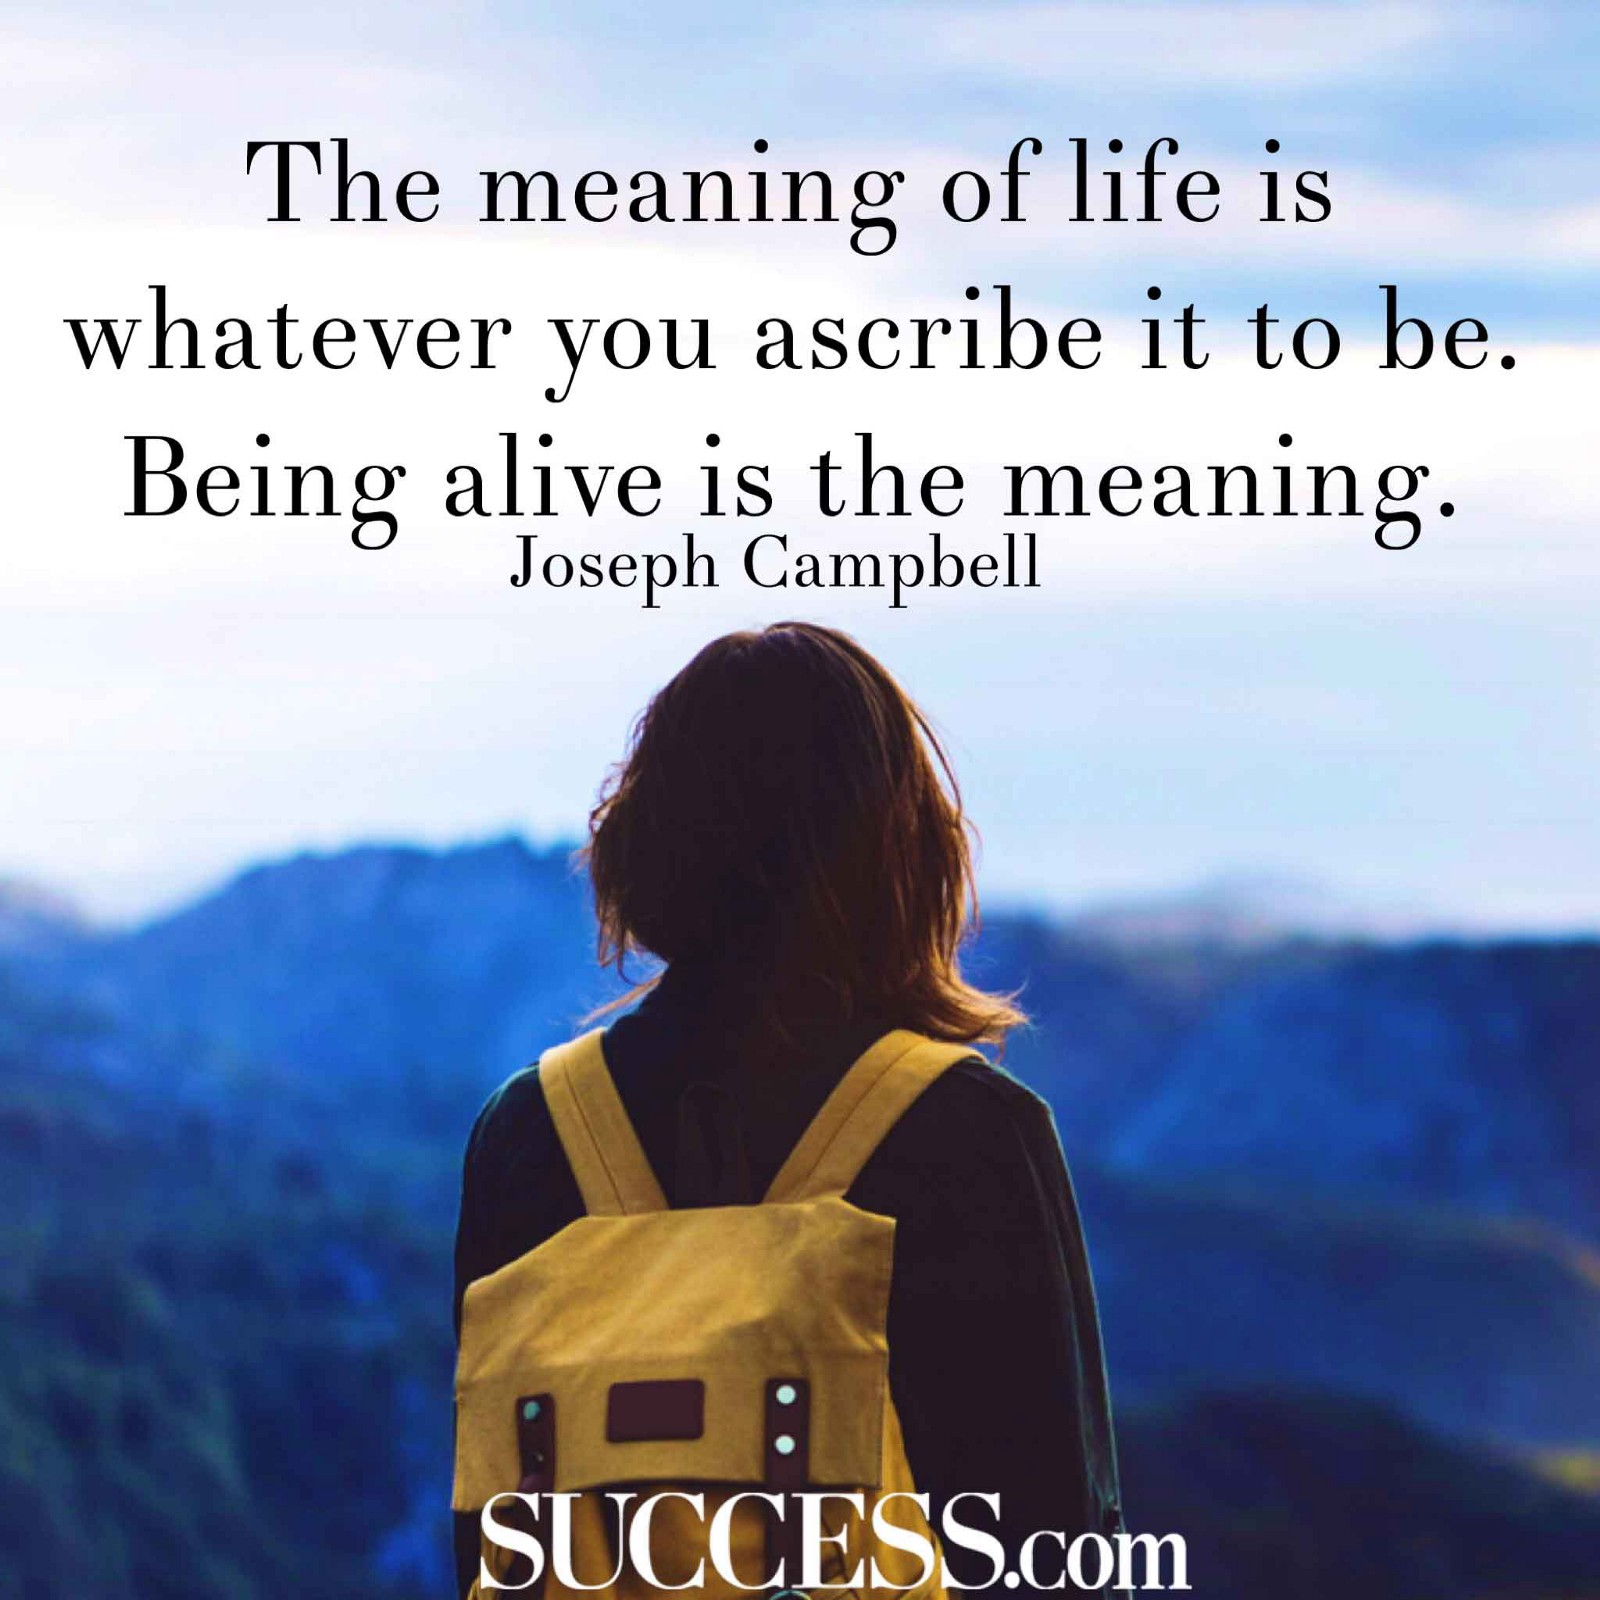 Philosophers Quotes On The Meaning Of Life The Meaning Of Life In 15 Wise Quotes  Success Magazine  Medium